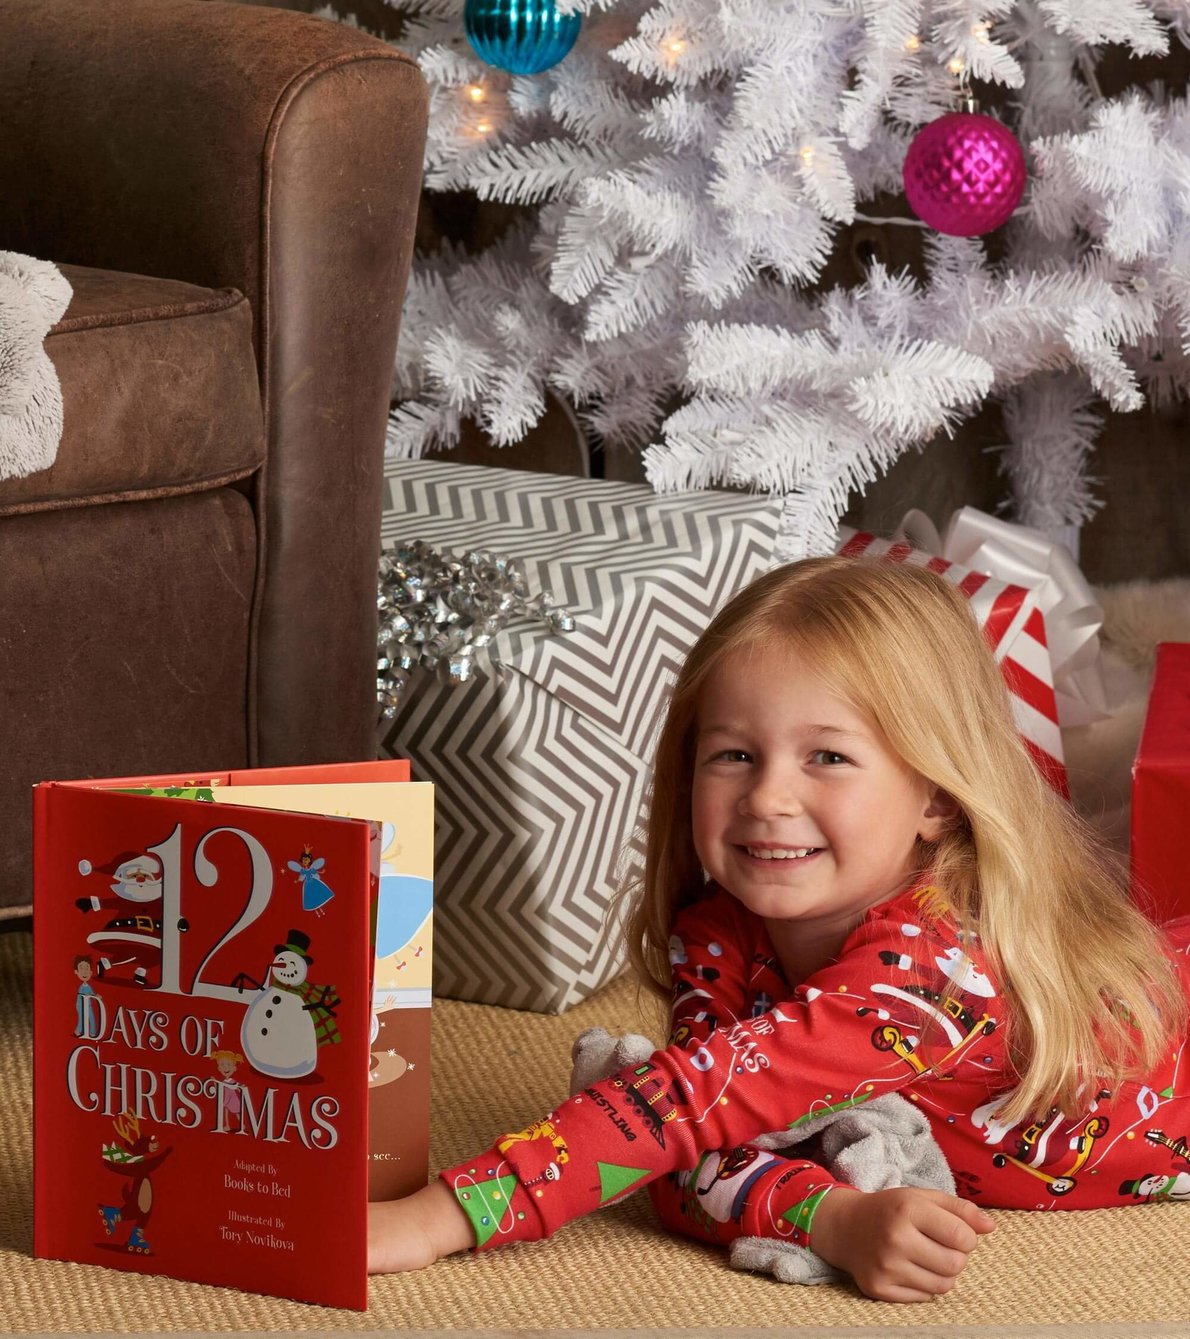 View larger image of 12 Days Of Christmas Book and Red Pajama Set